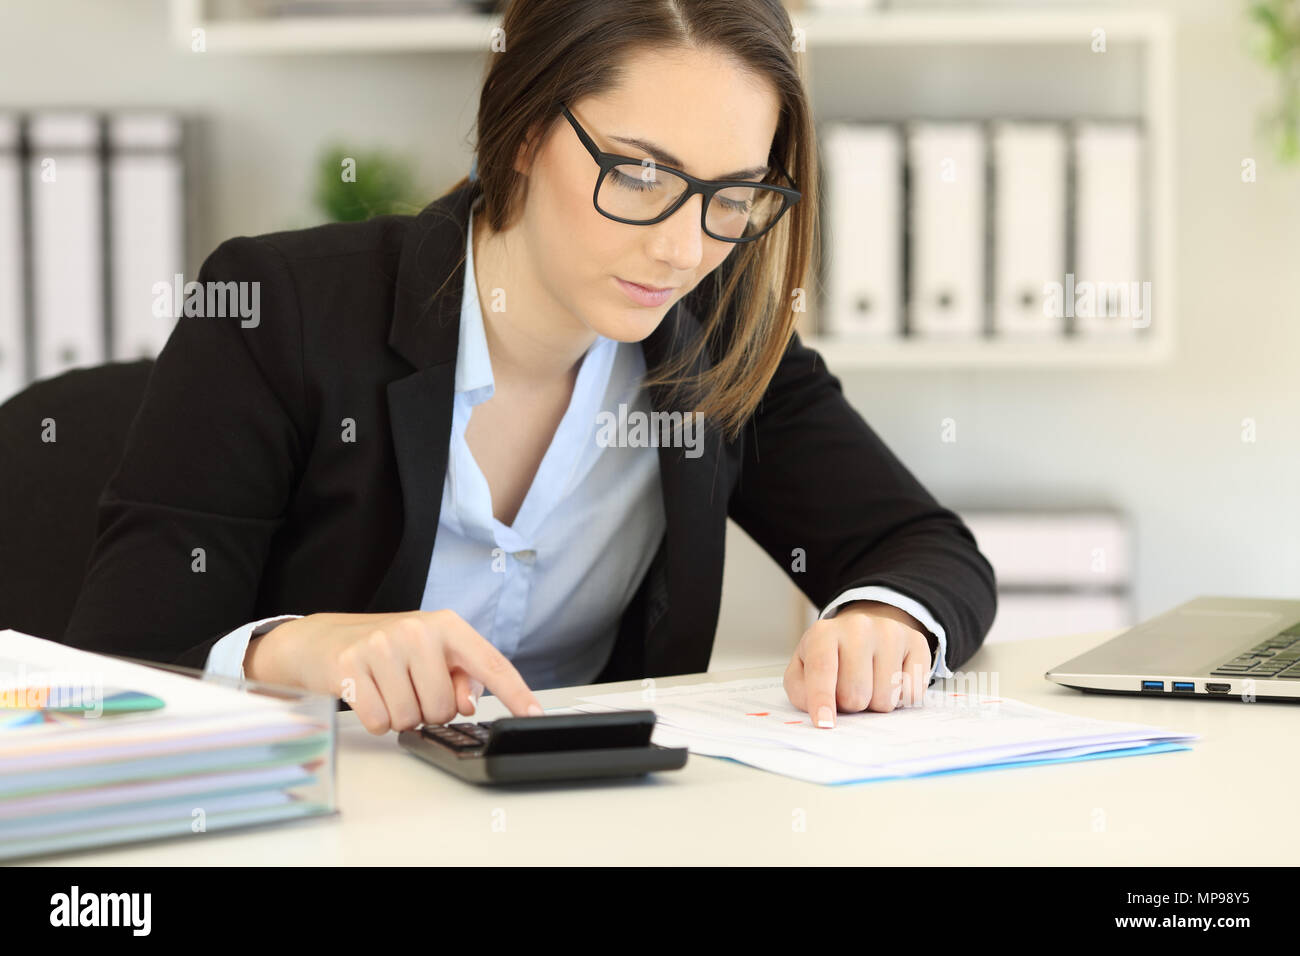 Serious bookkeeper calculating expenses using a calculator - Stock Image